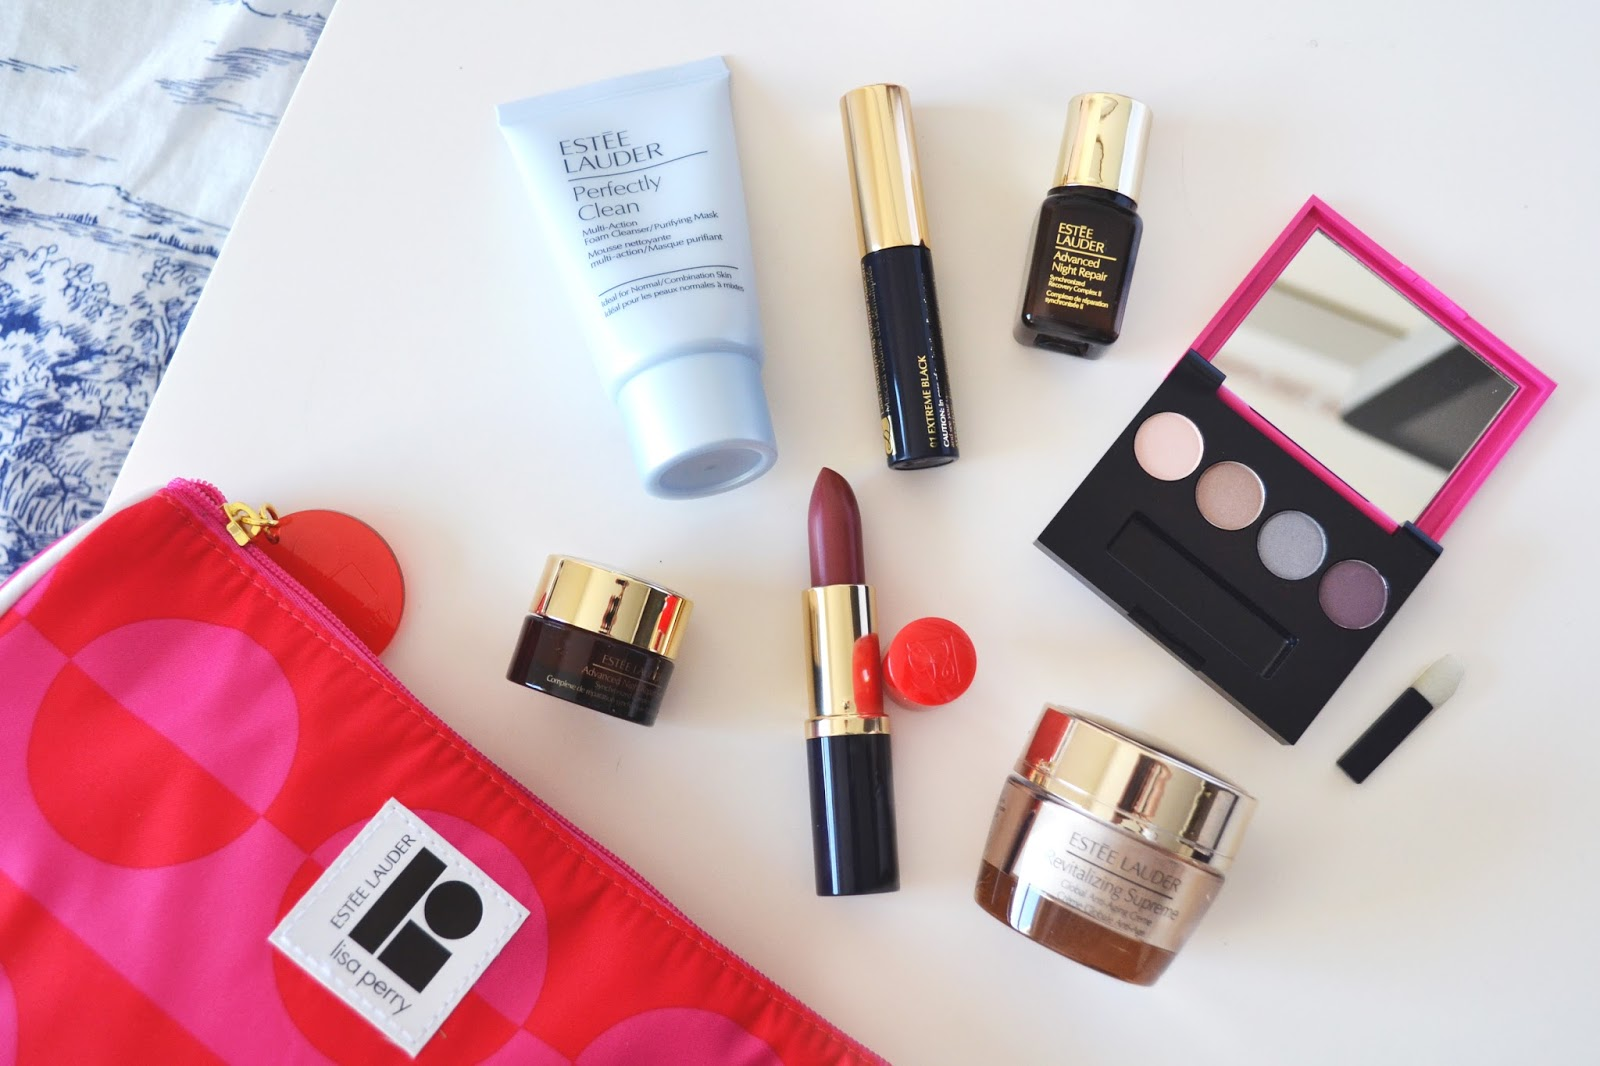 estee lauder beauty, estee lauder make up